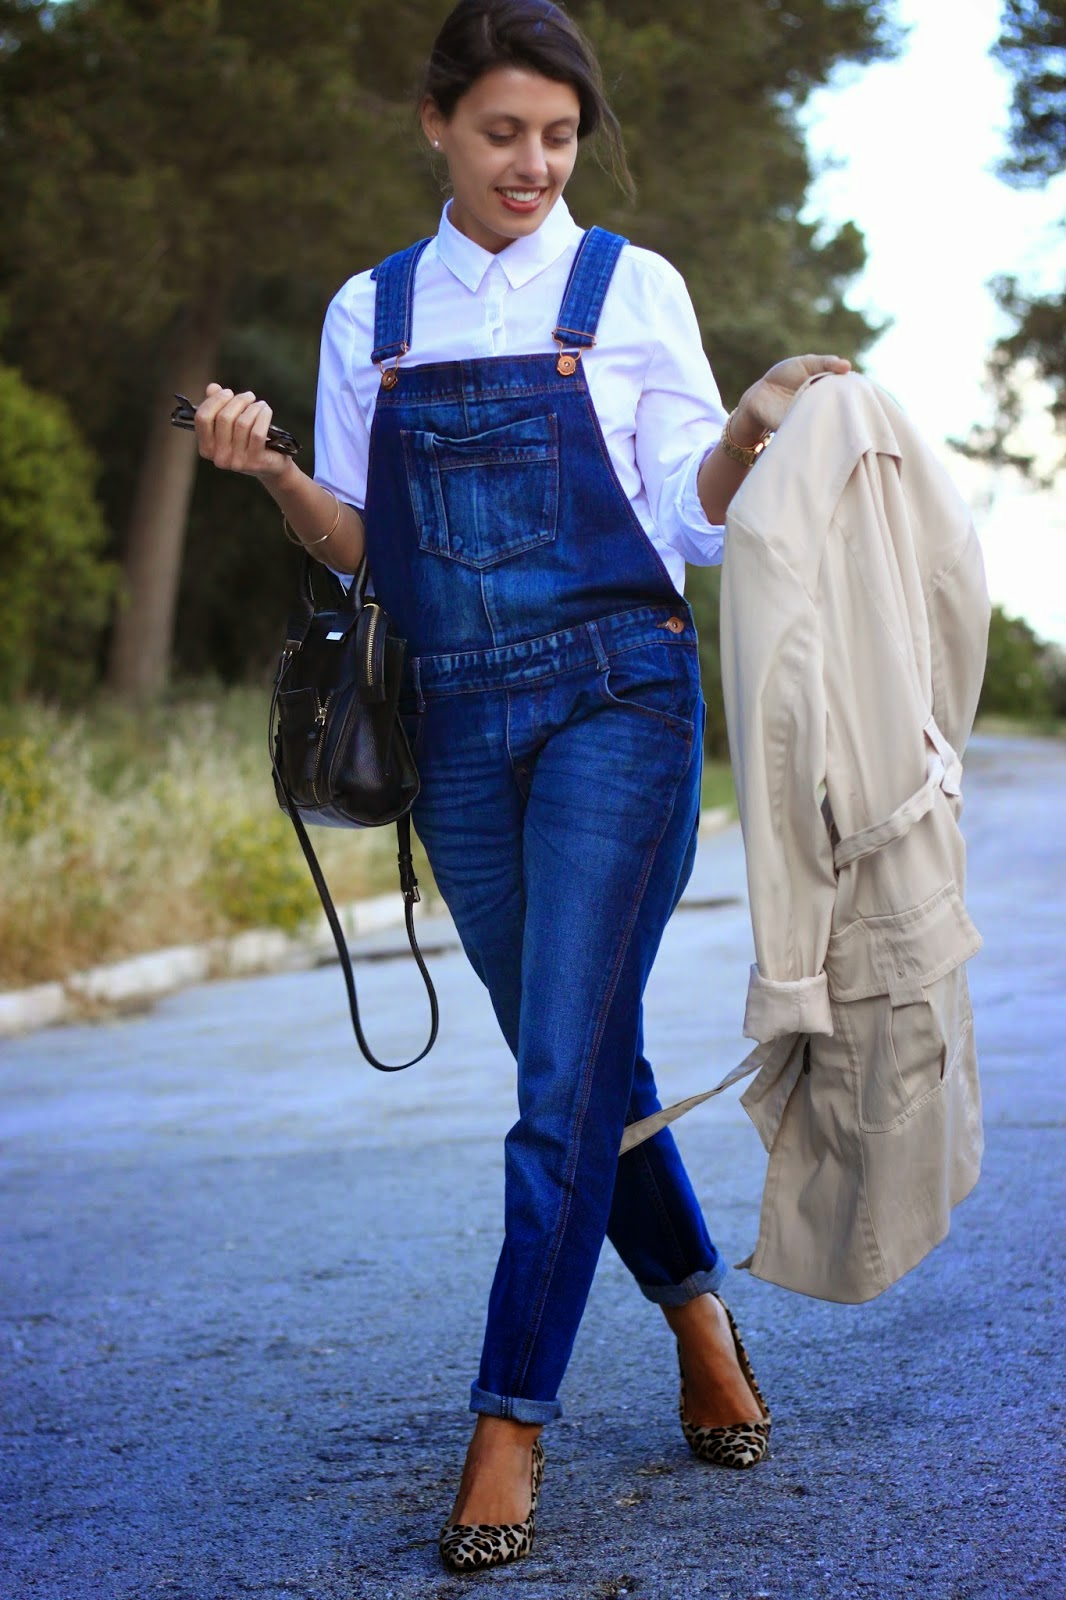 http://ilovefitametrica.blogspot.pt/2014/05/dungarees-in-love.html